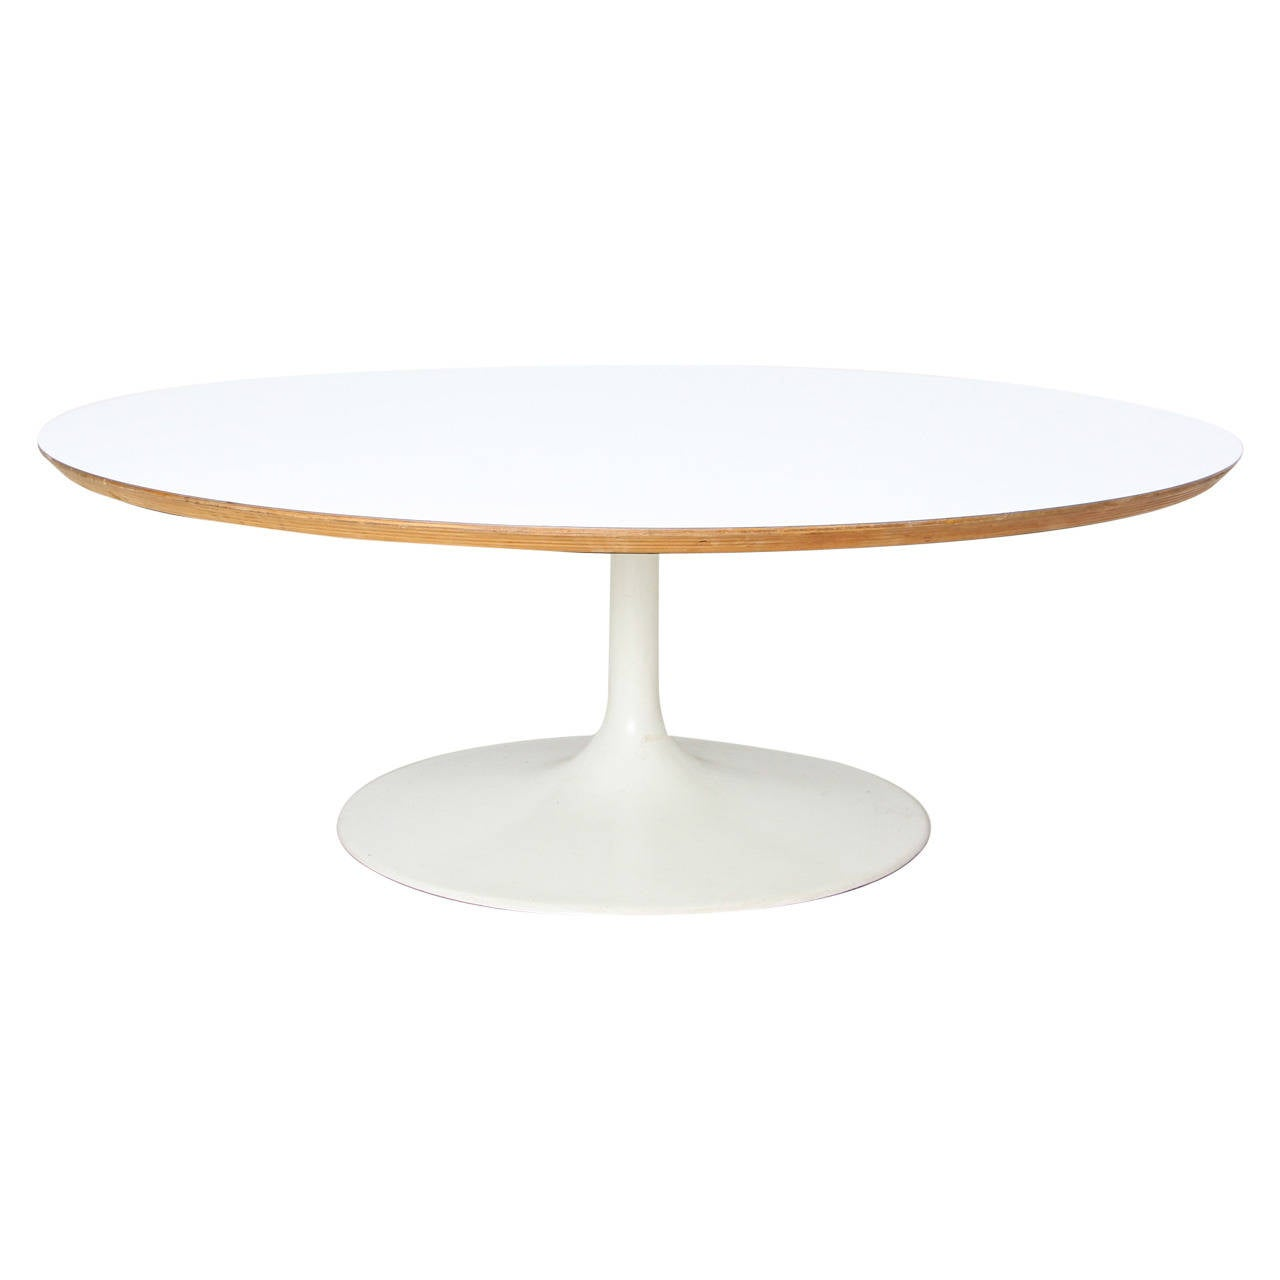 1960s Kho Liang Ie Tulip Coffee Table Edited By Artifort At 1stdibs